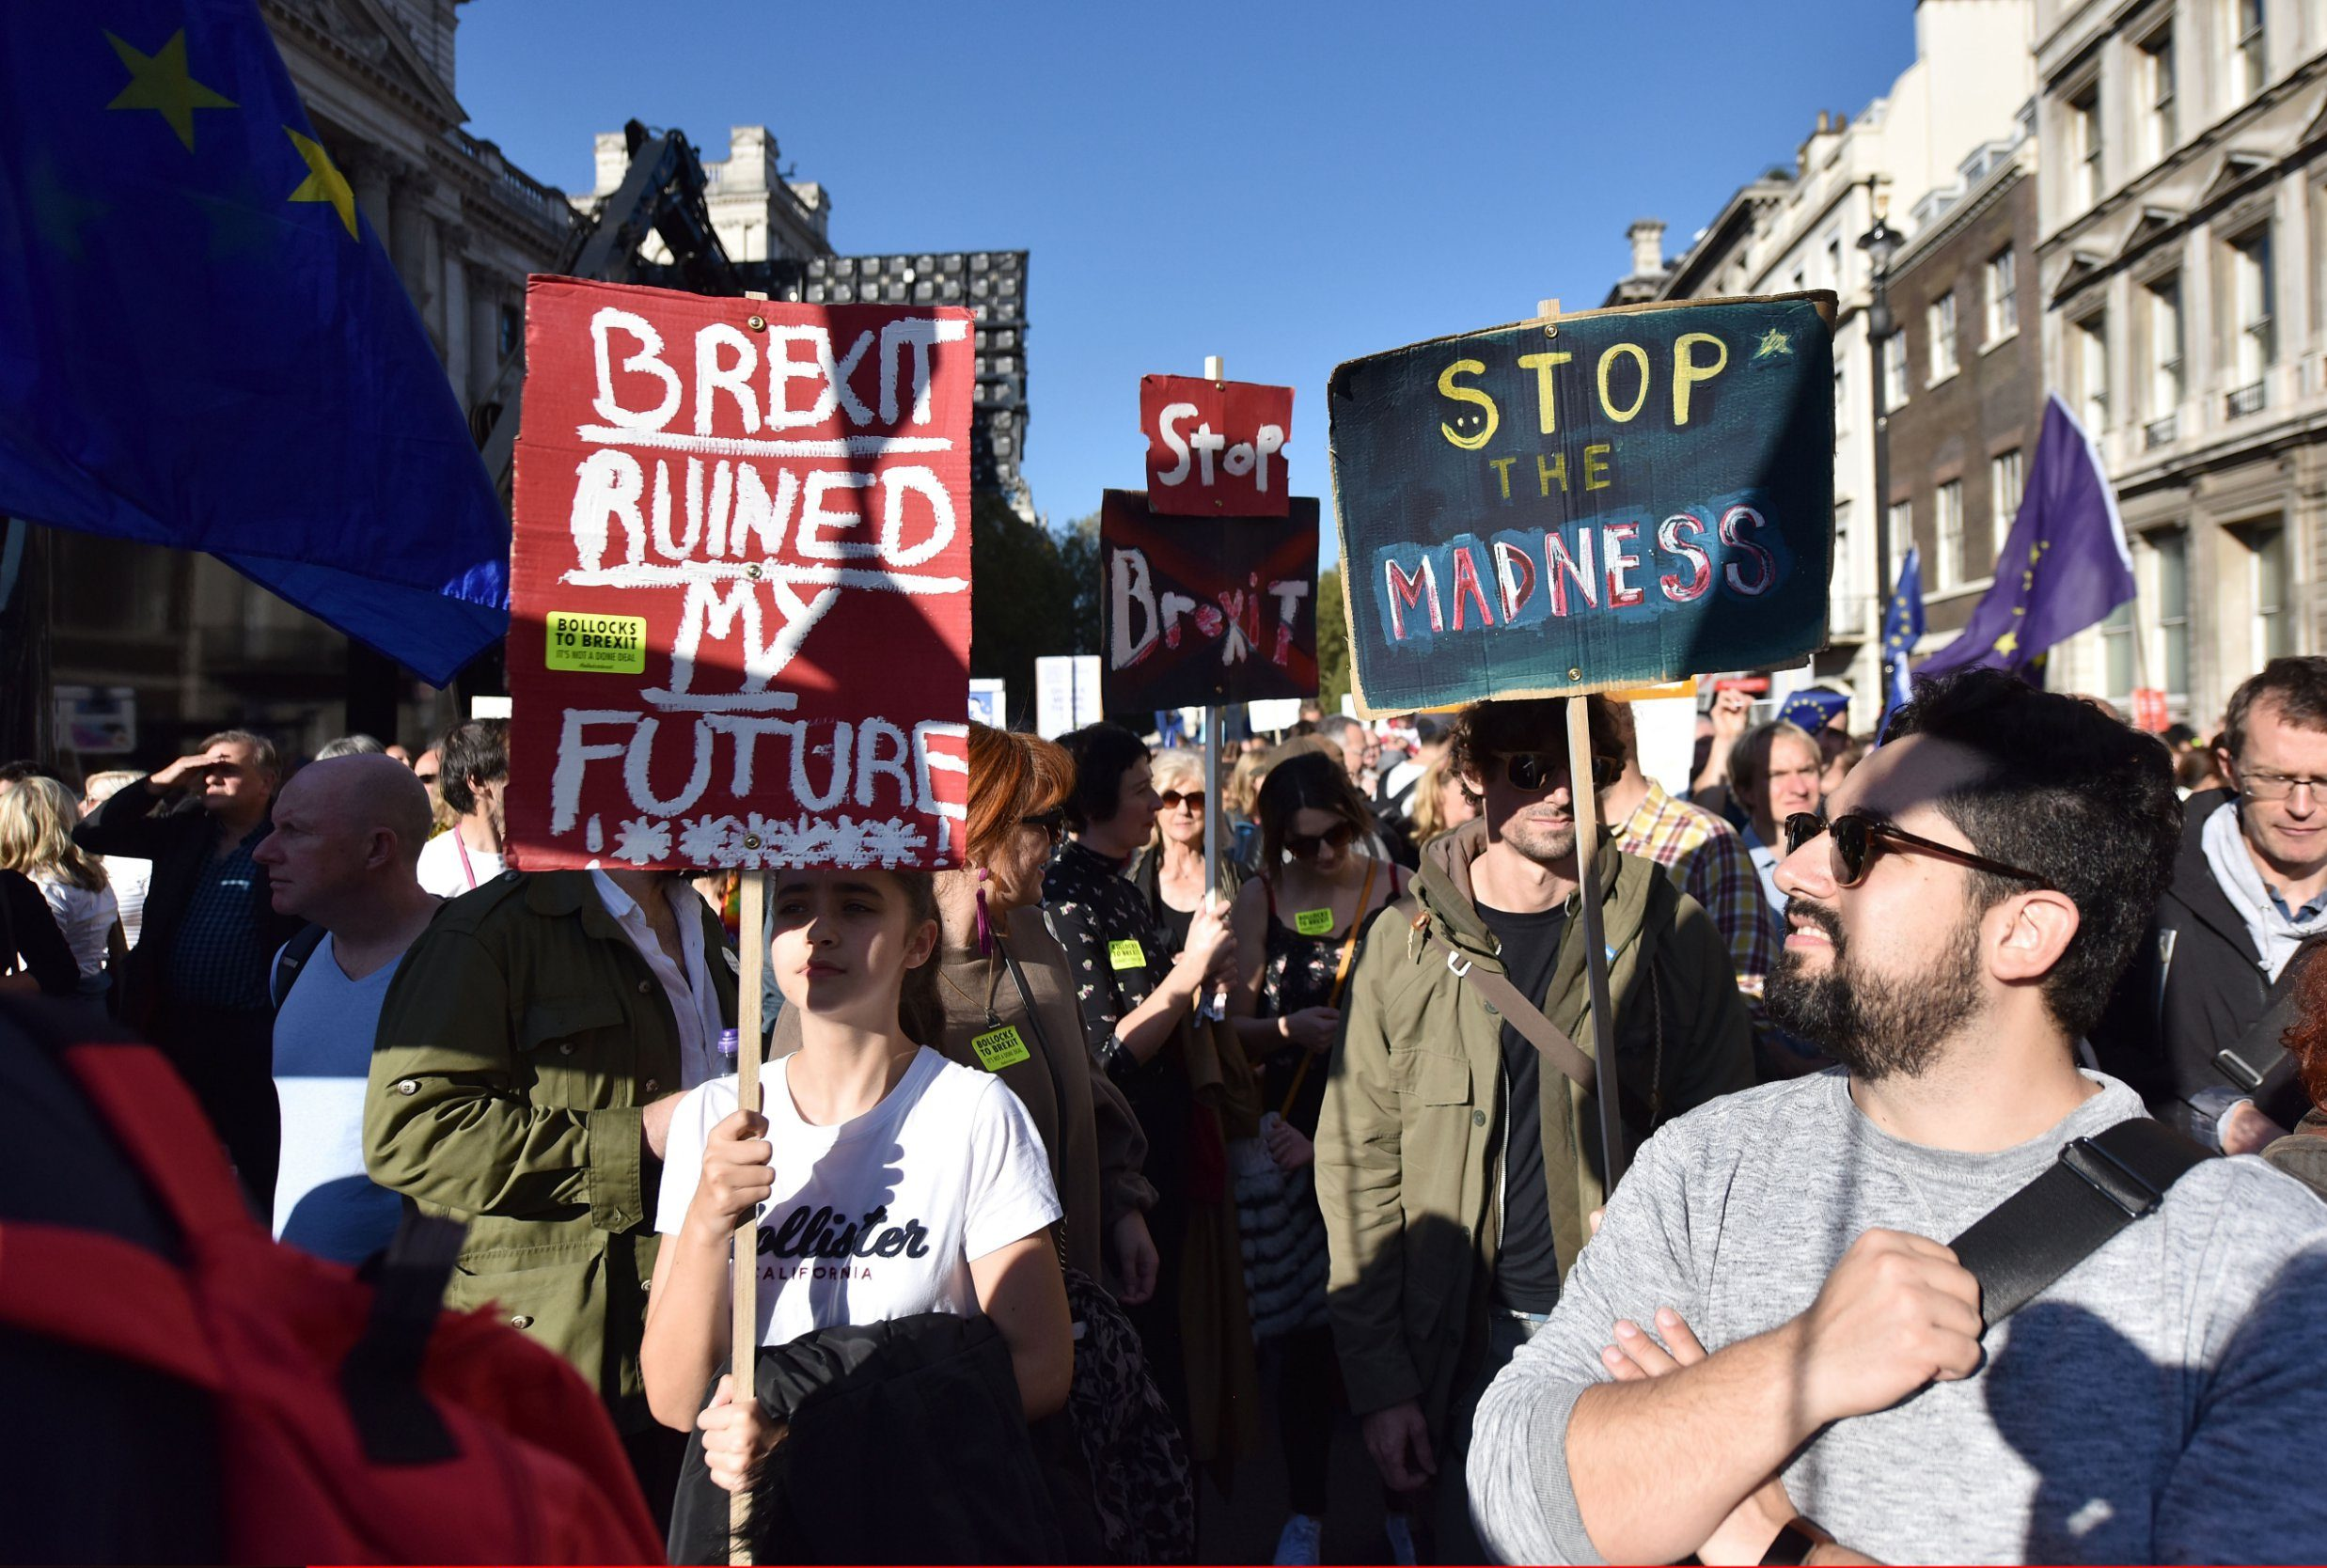 LONDON, ENGLAND - OCTOBER 20: People hold placards and march to demand a people's vote against Brexit on October 20, 2018 in London, England. More than one hundred thousand people march from Park Lane to Parliament Square in what is said to be the largest public protest against Brexit so far. The march is to demand a People's Vote on the final Brexit deal amid growing support from MPs from all the main political parties for a final say referendum. (Photo by John Keeble/Getty Images)